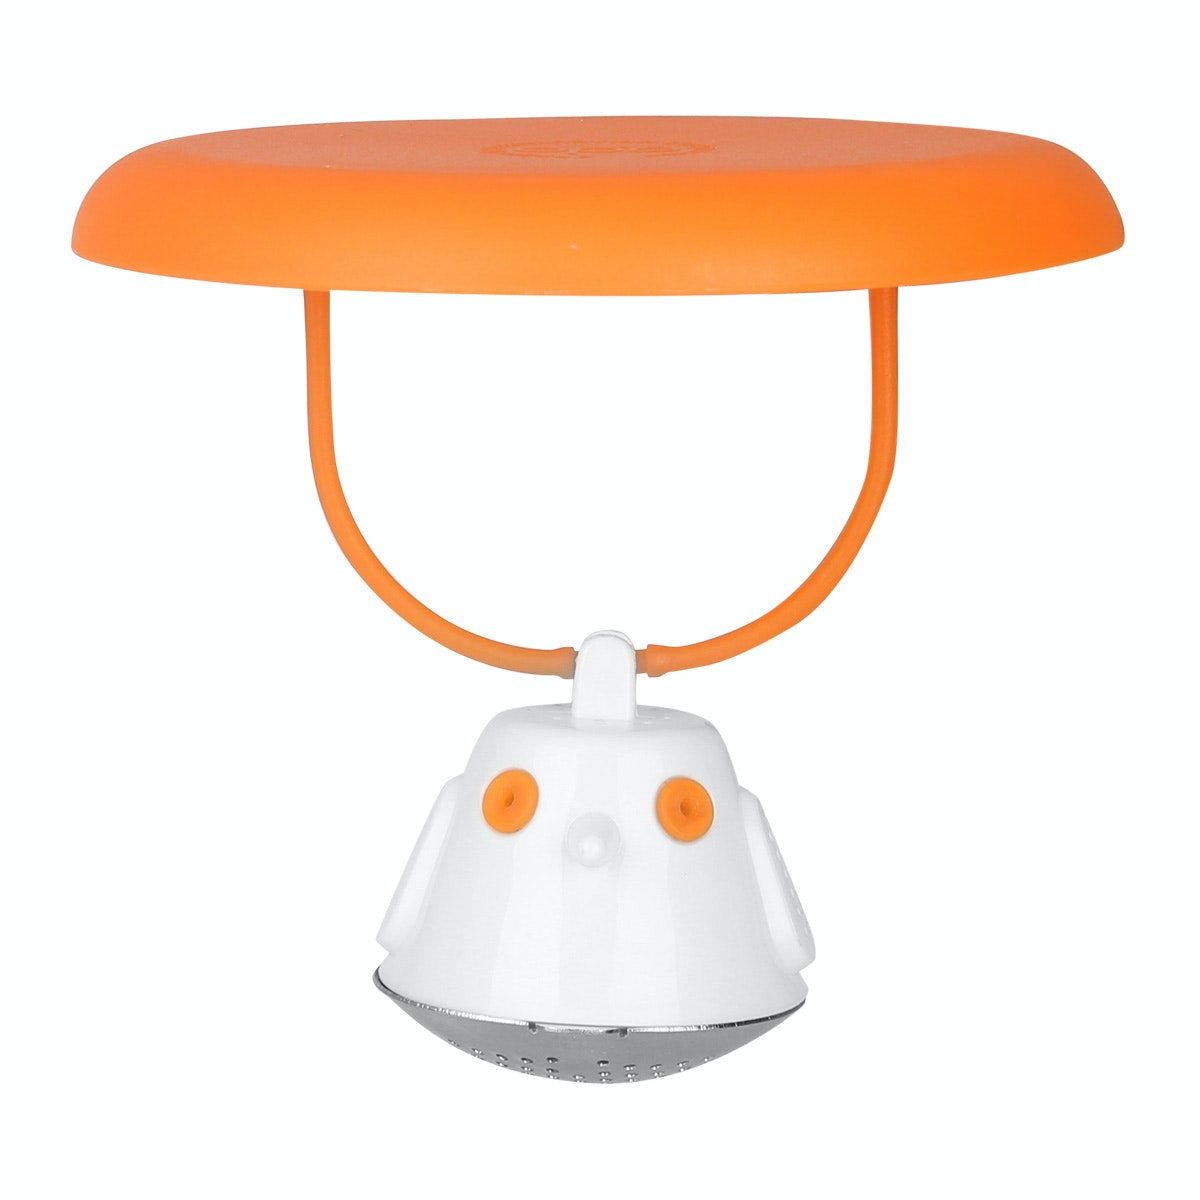 Qdo Birdies Swing - Orange